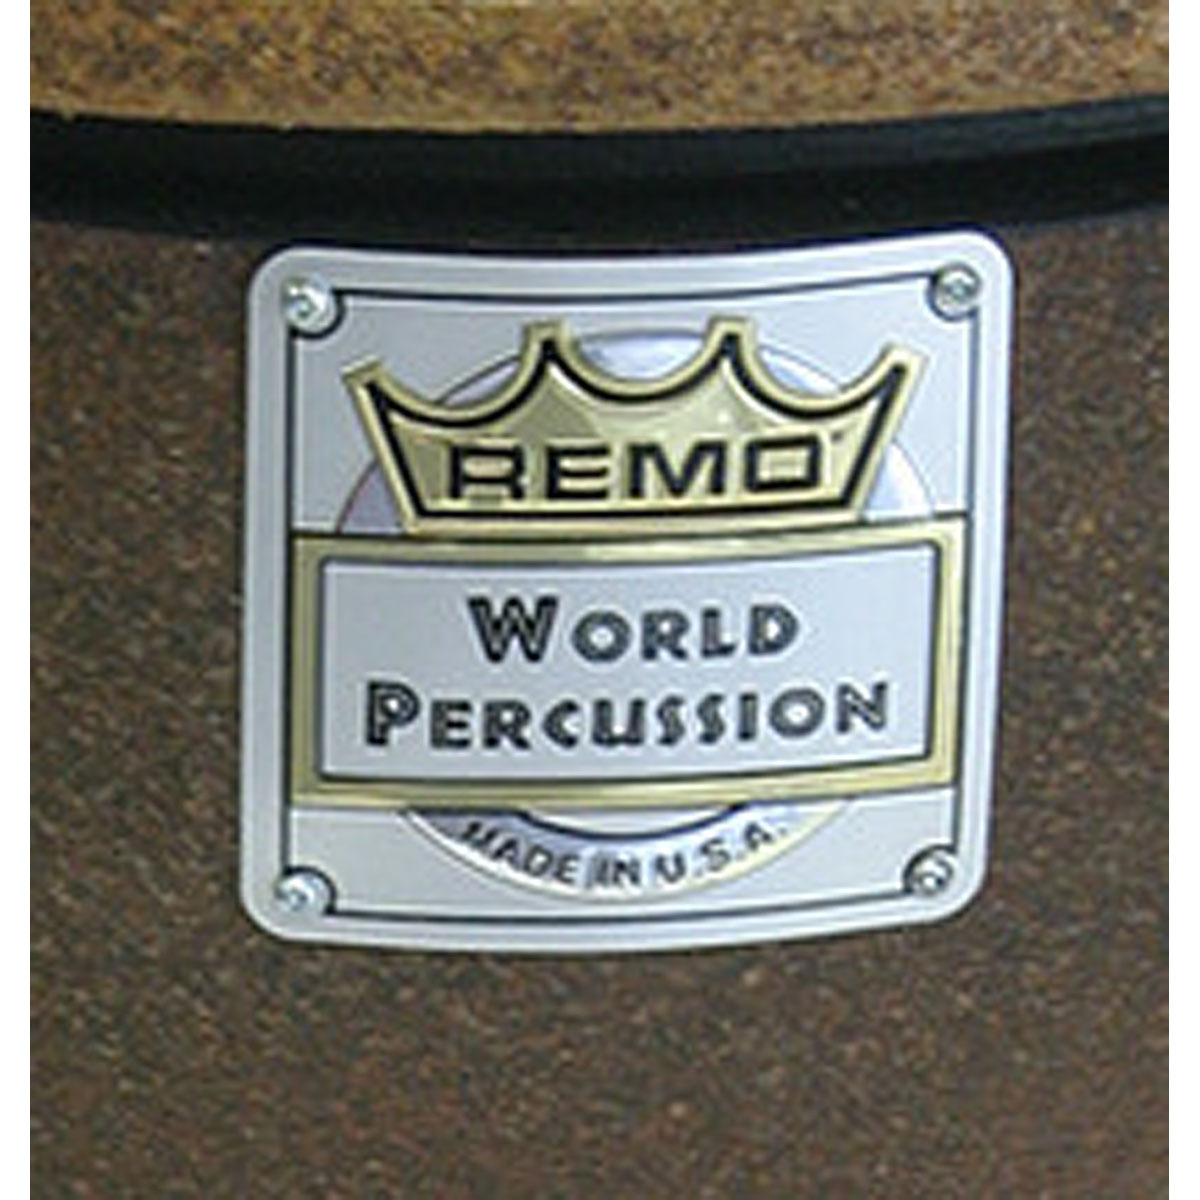 World Percussion by REMO